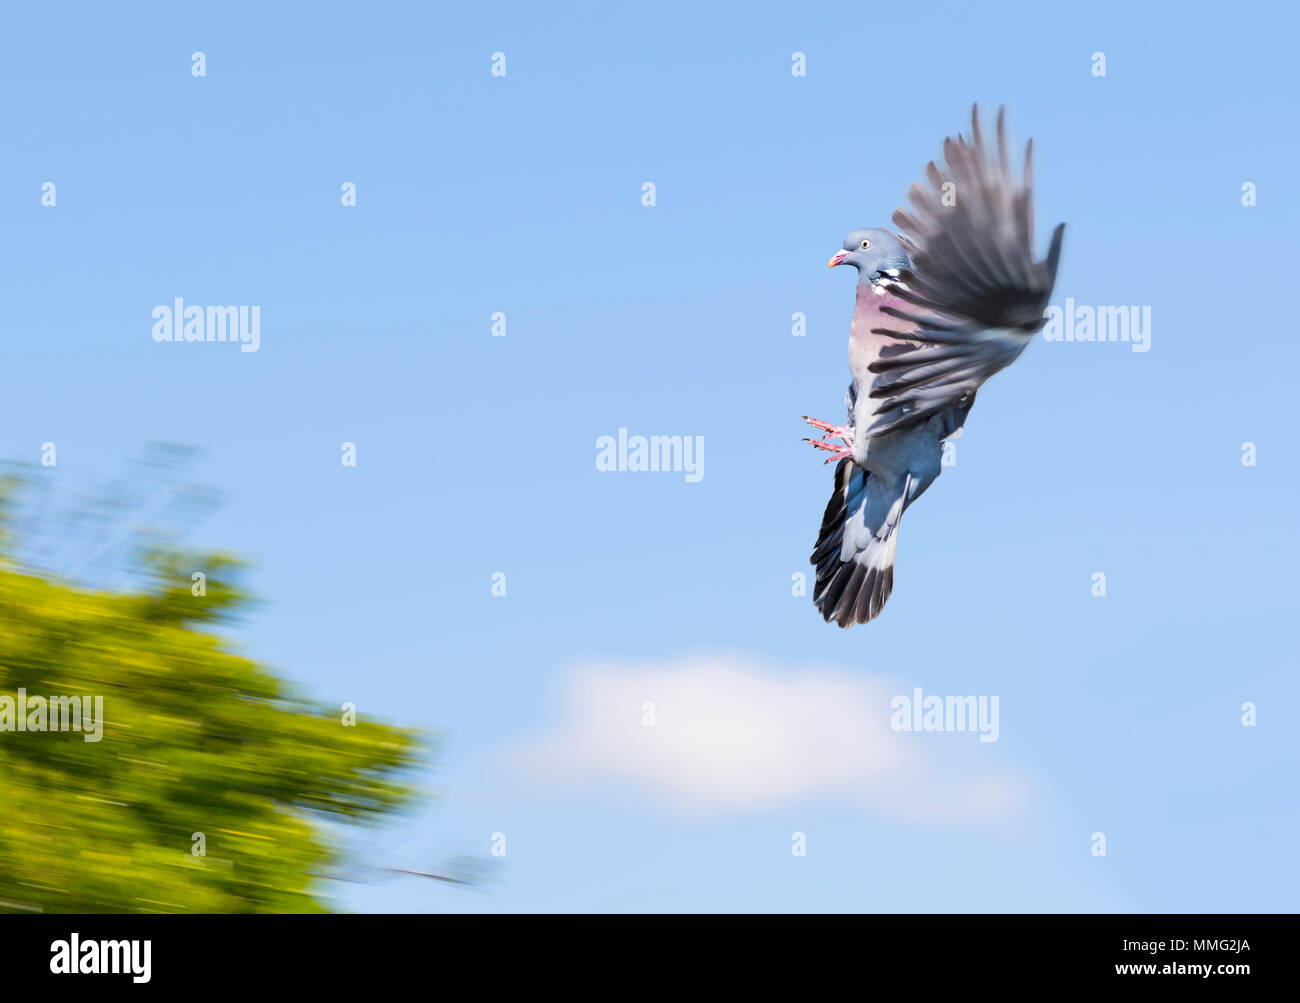 Wood Pigeon (Columba palumbus) with wings up frozen in the air against blue sky and coming into land on a tree, in the UK. - Stock Image